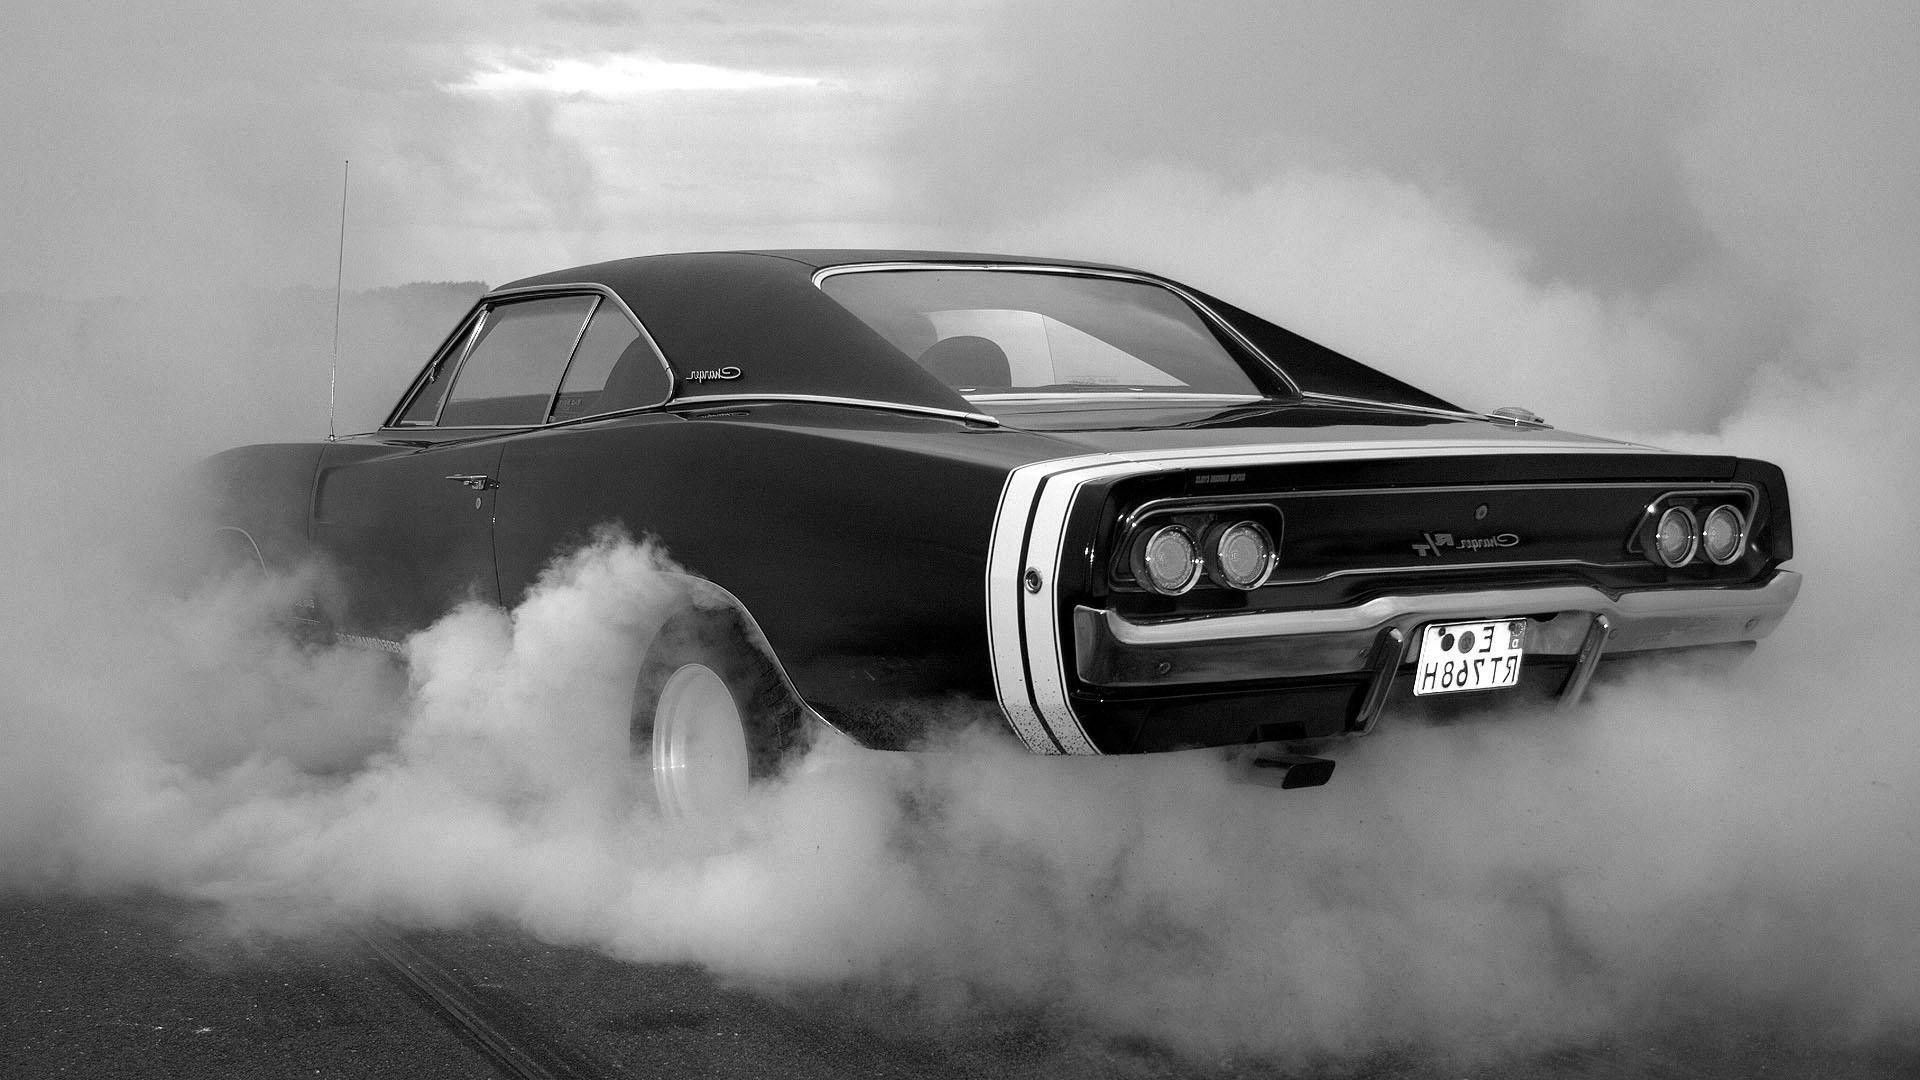 Cool Muscle Car Desktop Wallpaper Car Hd Classic Cars Muscle Car Backgrounds